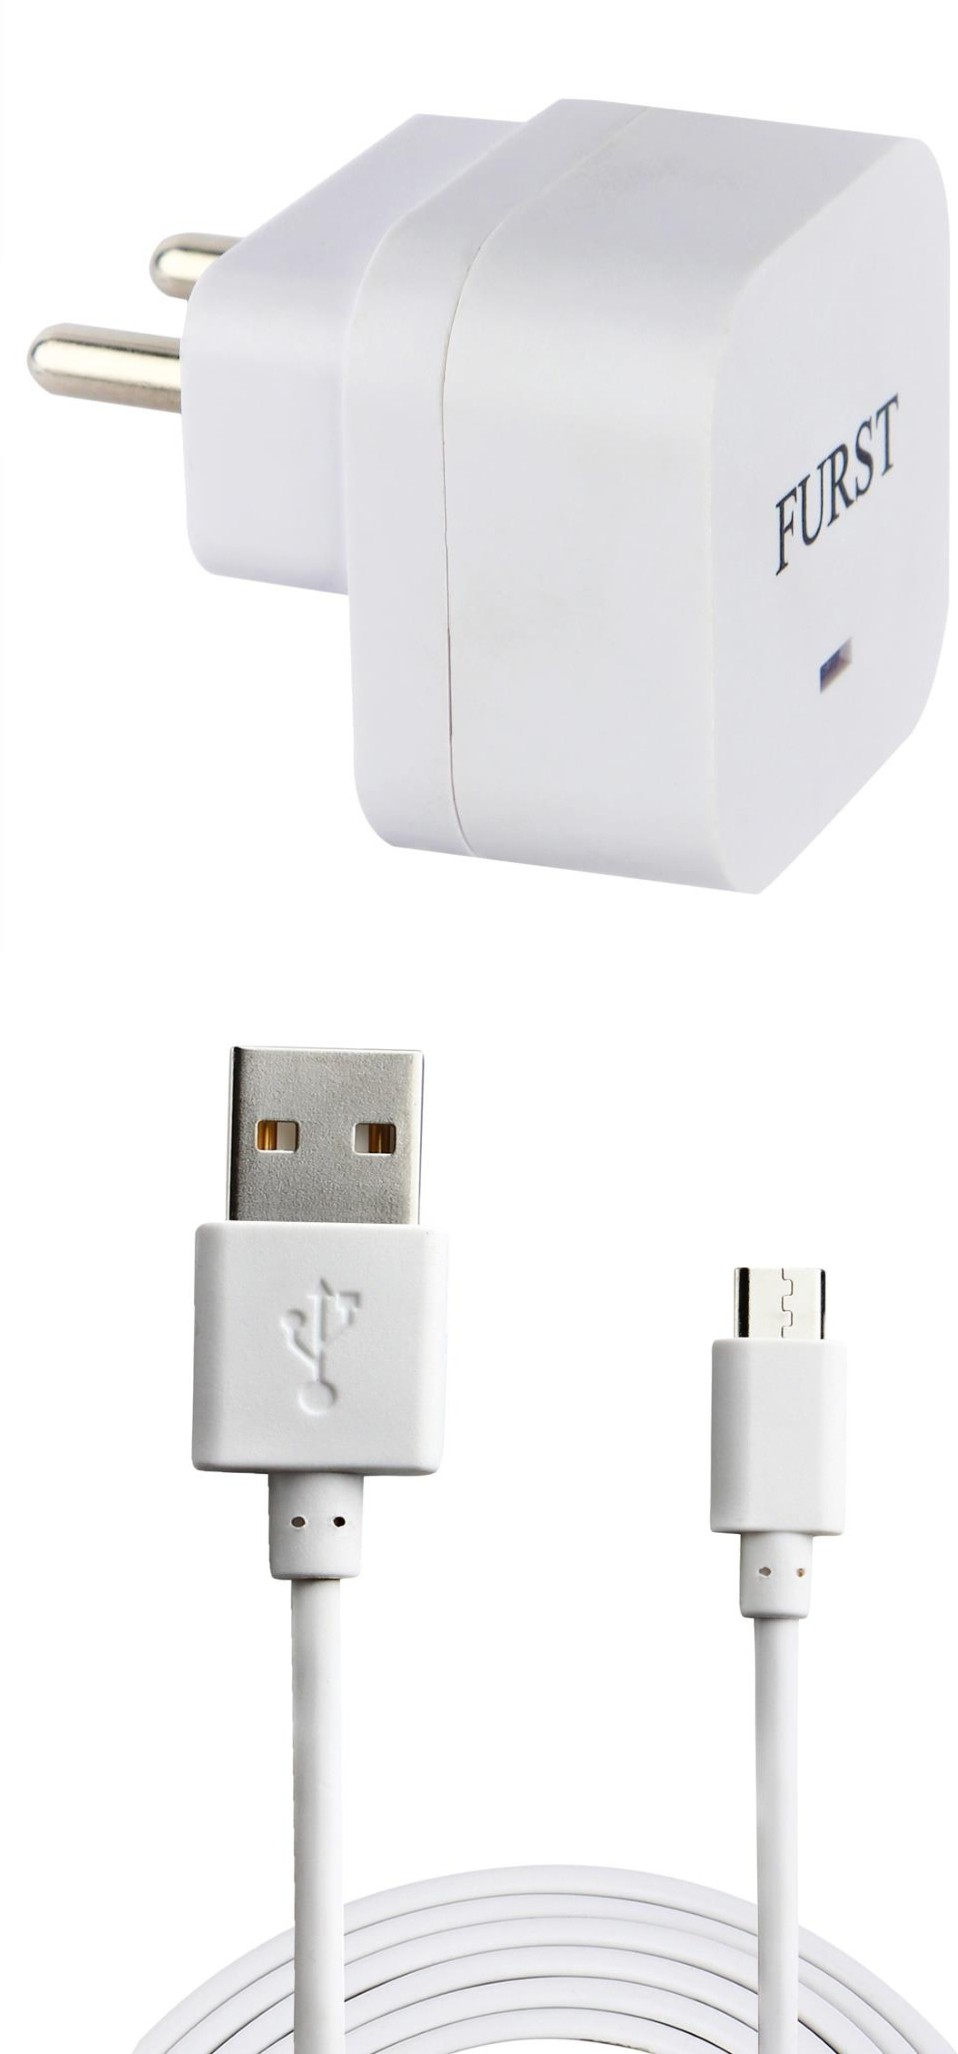 Furst 1.5 Amp. USB Adapter with Cable (1 Mtr) For Infocus Bingo 20 Mobile Charger(White)